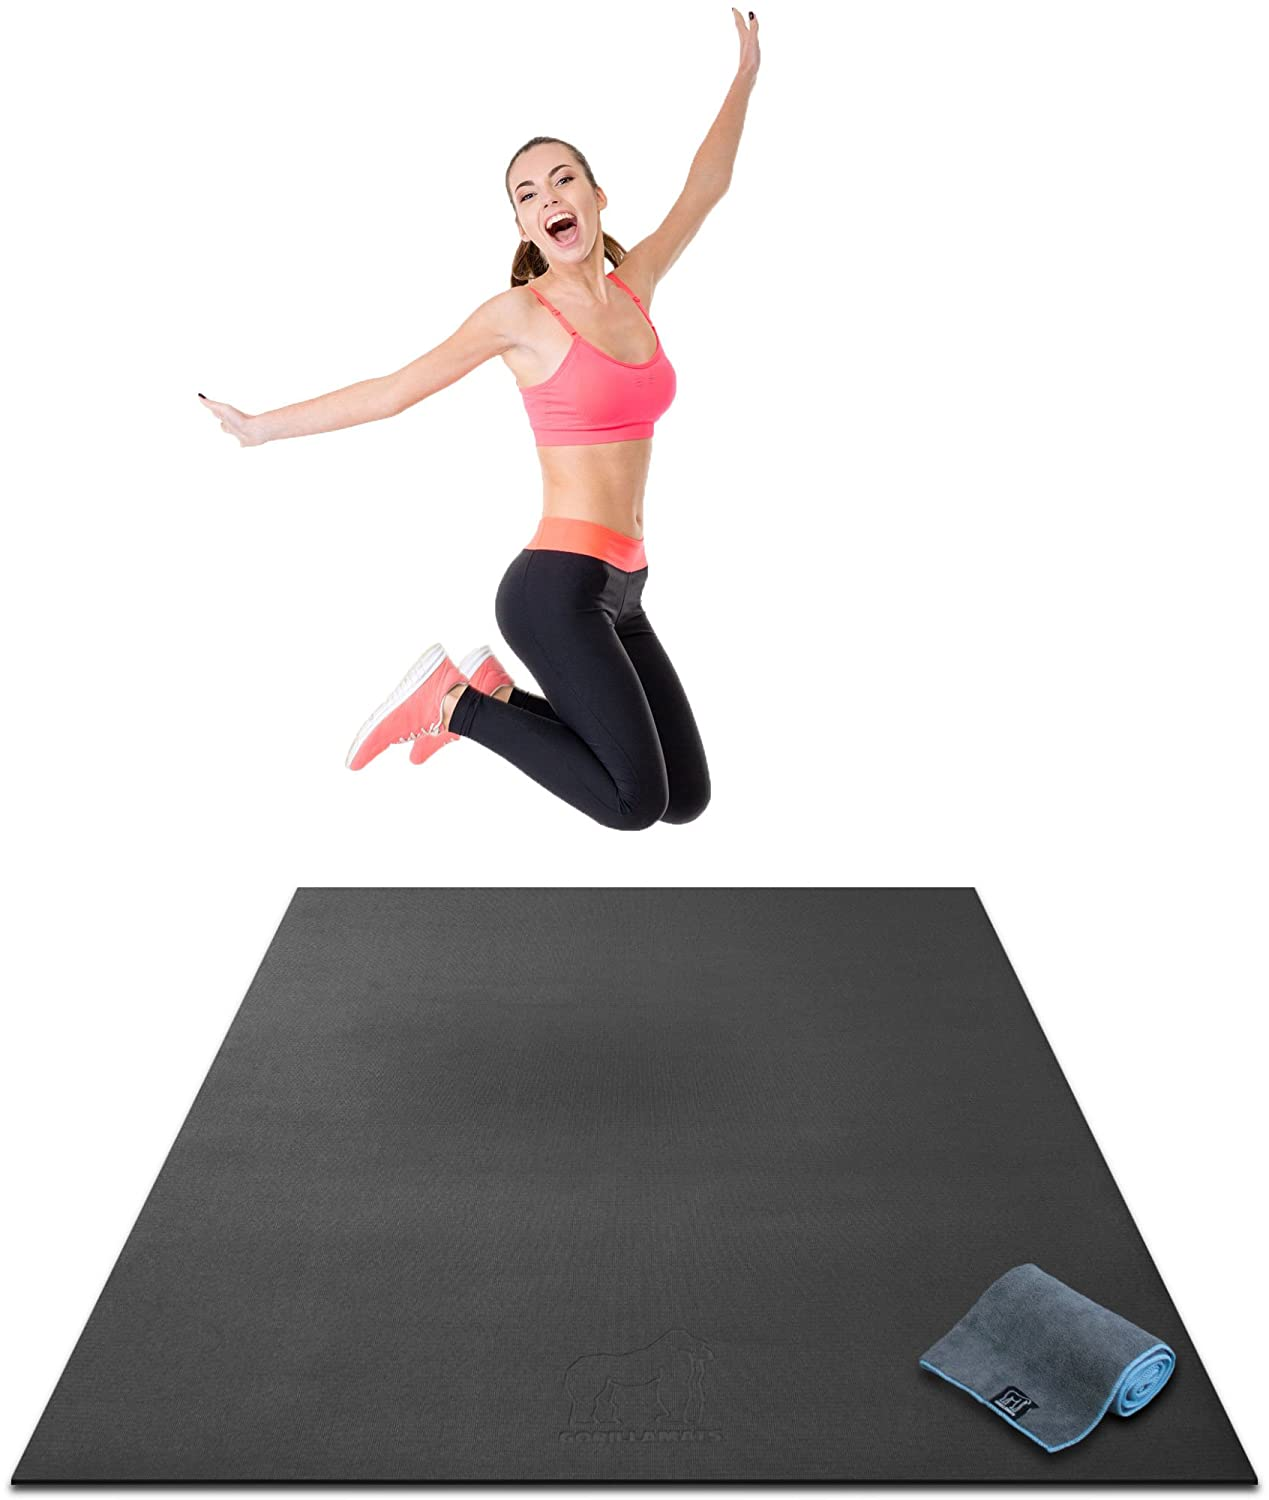 What should be a gym mat for children and adults